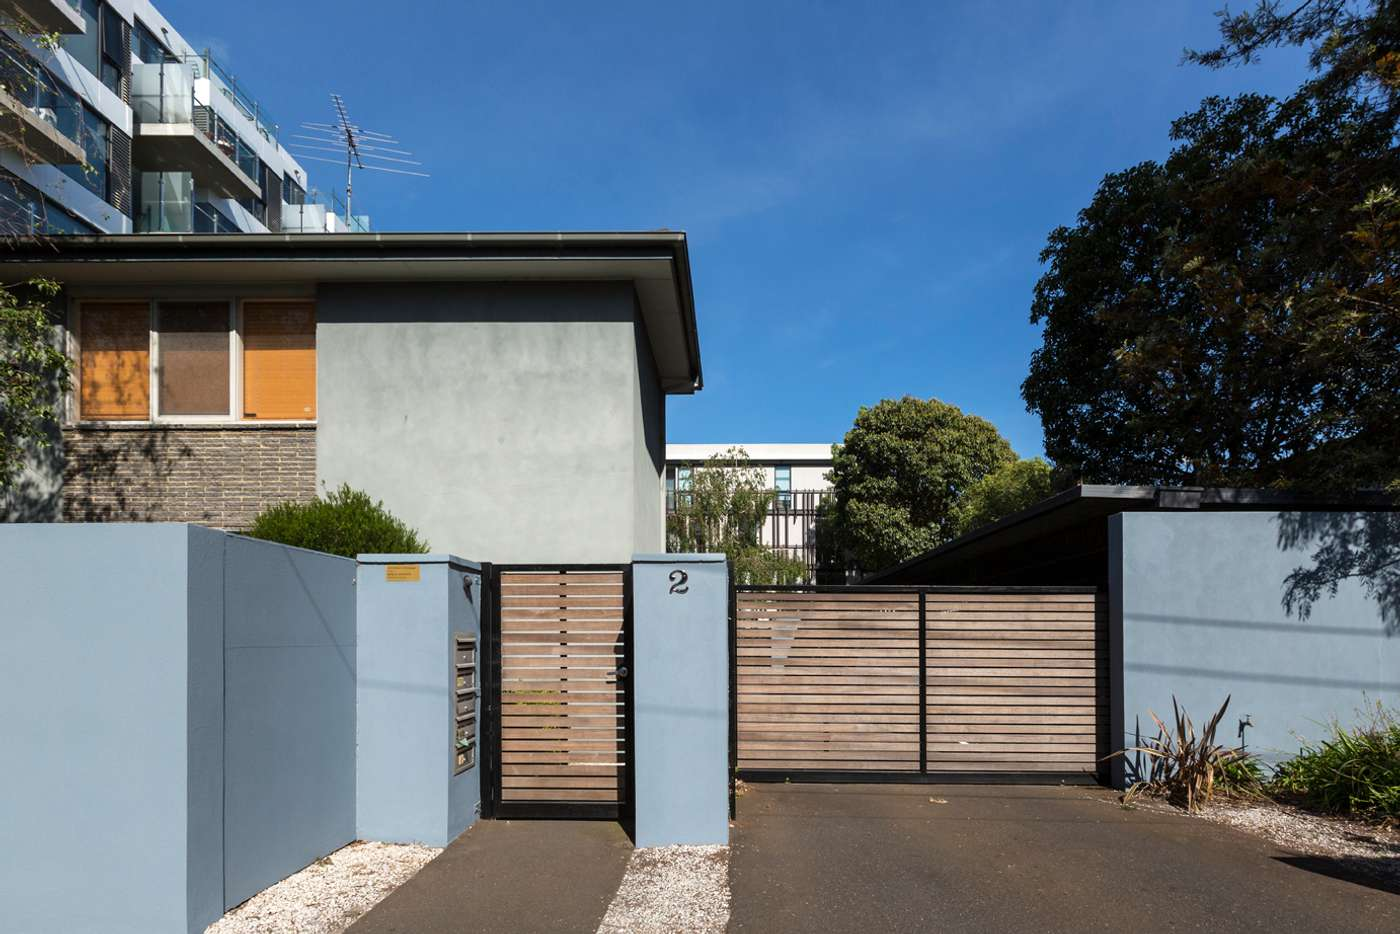 Seventh view of Homely apartment listing, 4/2 Yorston Court, Elsternwick VIC 3185